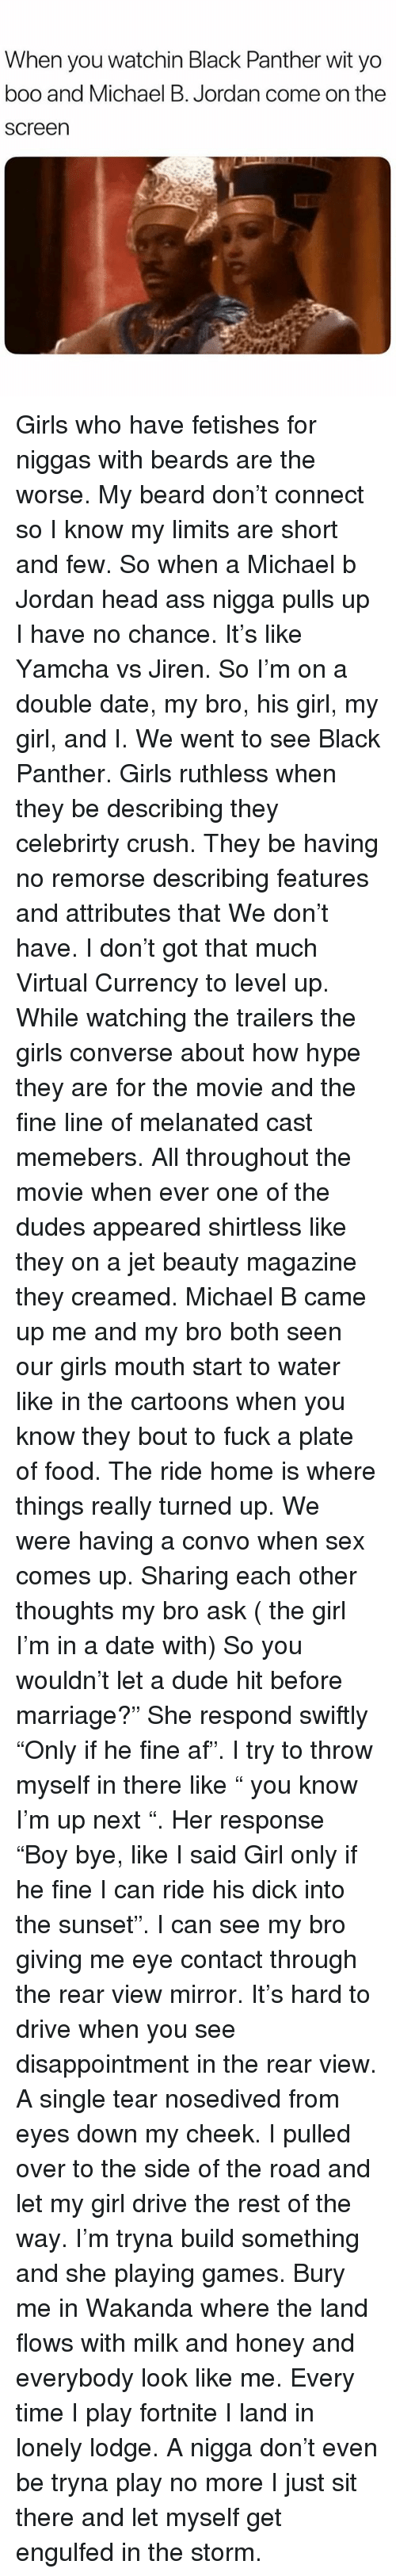 """Af, Ass, and Beard: When you watchin Black Panther wit yo  boo and Michael B. Jordan come on the  screen Girls who have fetishes for niggas with beards are the worse. My beard don't connect so I know my limits are short and few. So when a Michael b Jordan head ass nigga pulls up I have no chance. It's like Yamcha vs Jiren. So I'm on a double date, my bro, his girl, my girl, and I. We went to see Black Panther. Girls ruthless when they be describing they celebrirty crush. They be having no remorse describing features and attributes that We don't have. I don't got that much Virtual Currency to level up. While watching the trailers the girls converse about how hype they are for the movie and the fine line of melanated cast memebers. All throughout the movie when ever one of the dudes appeared shirtless like they on a jet beauty magazine they creamed. Michael B came up me and my bro both seen our girls mouth start to water like in the cartoons when you know they bout to fuck a plate of food. The ride home is where things really turned up. We were having a convo when sex comes up. Sharing each other thoughts my bro ask ( the girl I'm in a date with) So you wouldn't let a dude hit before marriage?"""" She respond swiftly """"Only if he fine af"""". I try to throw myself in there like """" you know I'm up next """". Her response """"Boy bye, like I said Girl only if he fine I can ride his dick into the sunset"""". I can see my bro giving me eye contact through the rear view mirror. It's hard to drive when you see disappointment in the rear view. A single tear nosedived from eyes down my cheek. I pulled over to the side of the road and let my girl drive the rest of the way. I'm tryna build something and she playing games. Bury me in Wakanda where the land flows with milk and honey and everybody look like me. Every time I play fortnite I land in lonely lodge. A nigga don't even be tryna play no more I just sit there and let myself get engulfed in the storm."""